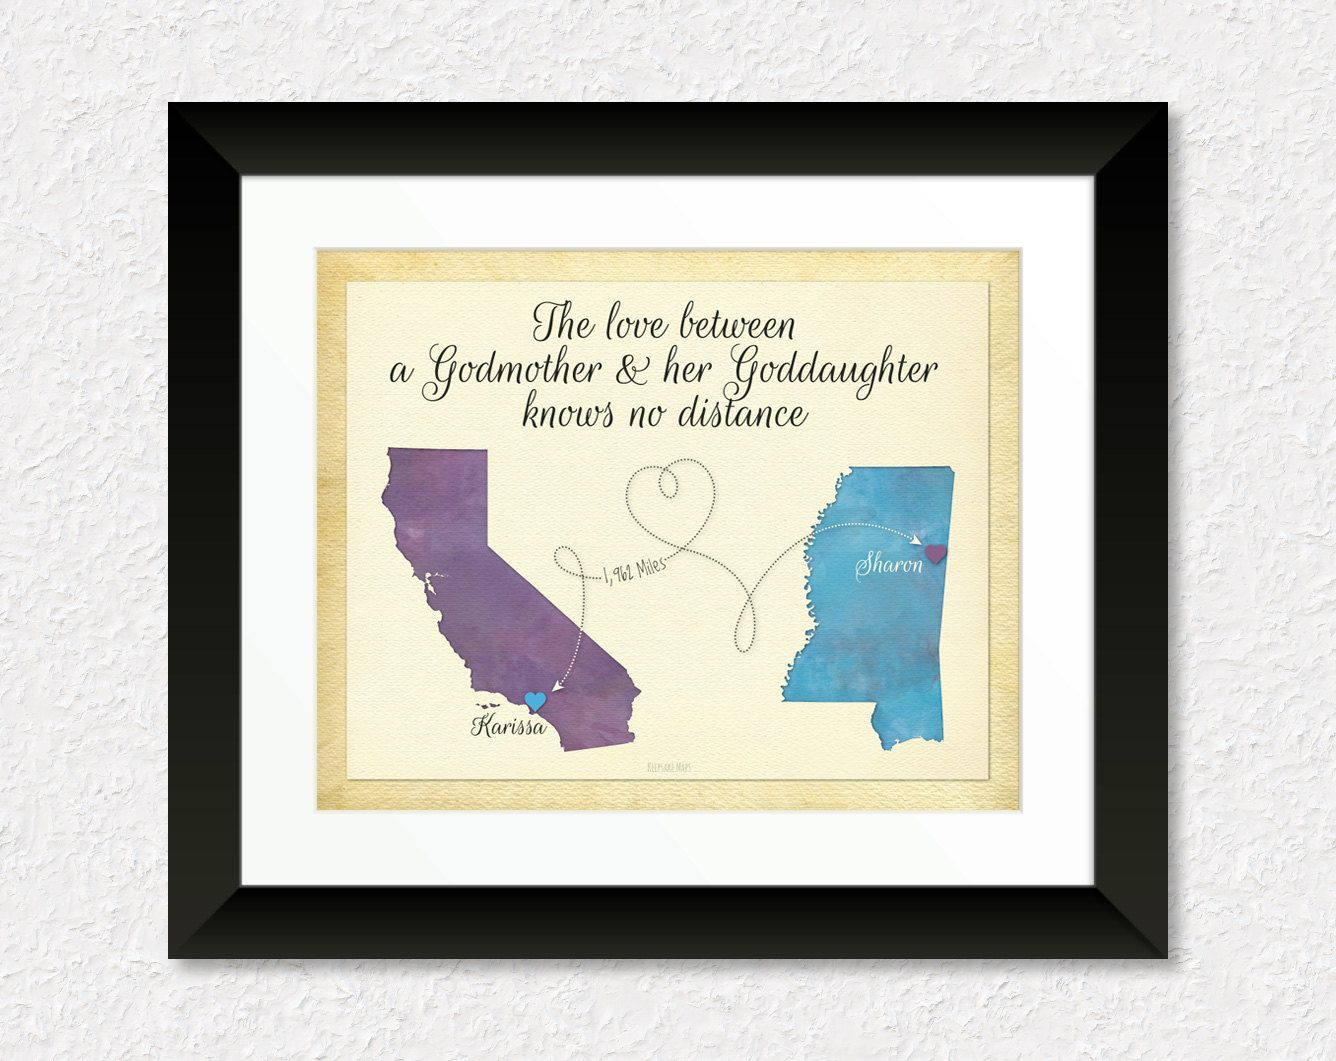 Godmother Gift Goddaughter Gift Long Distance Gift: Godmother Gift, Goddaughter Gift, Long Distance Gift